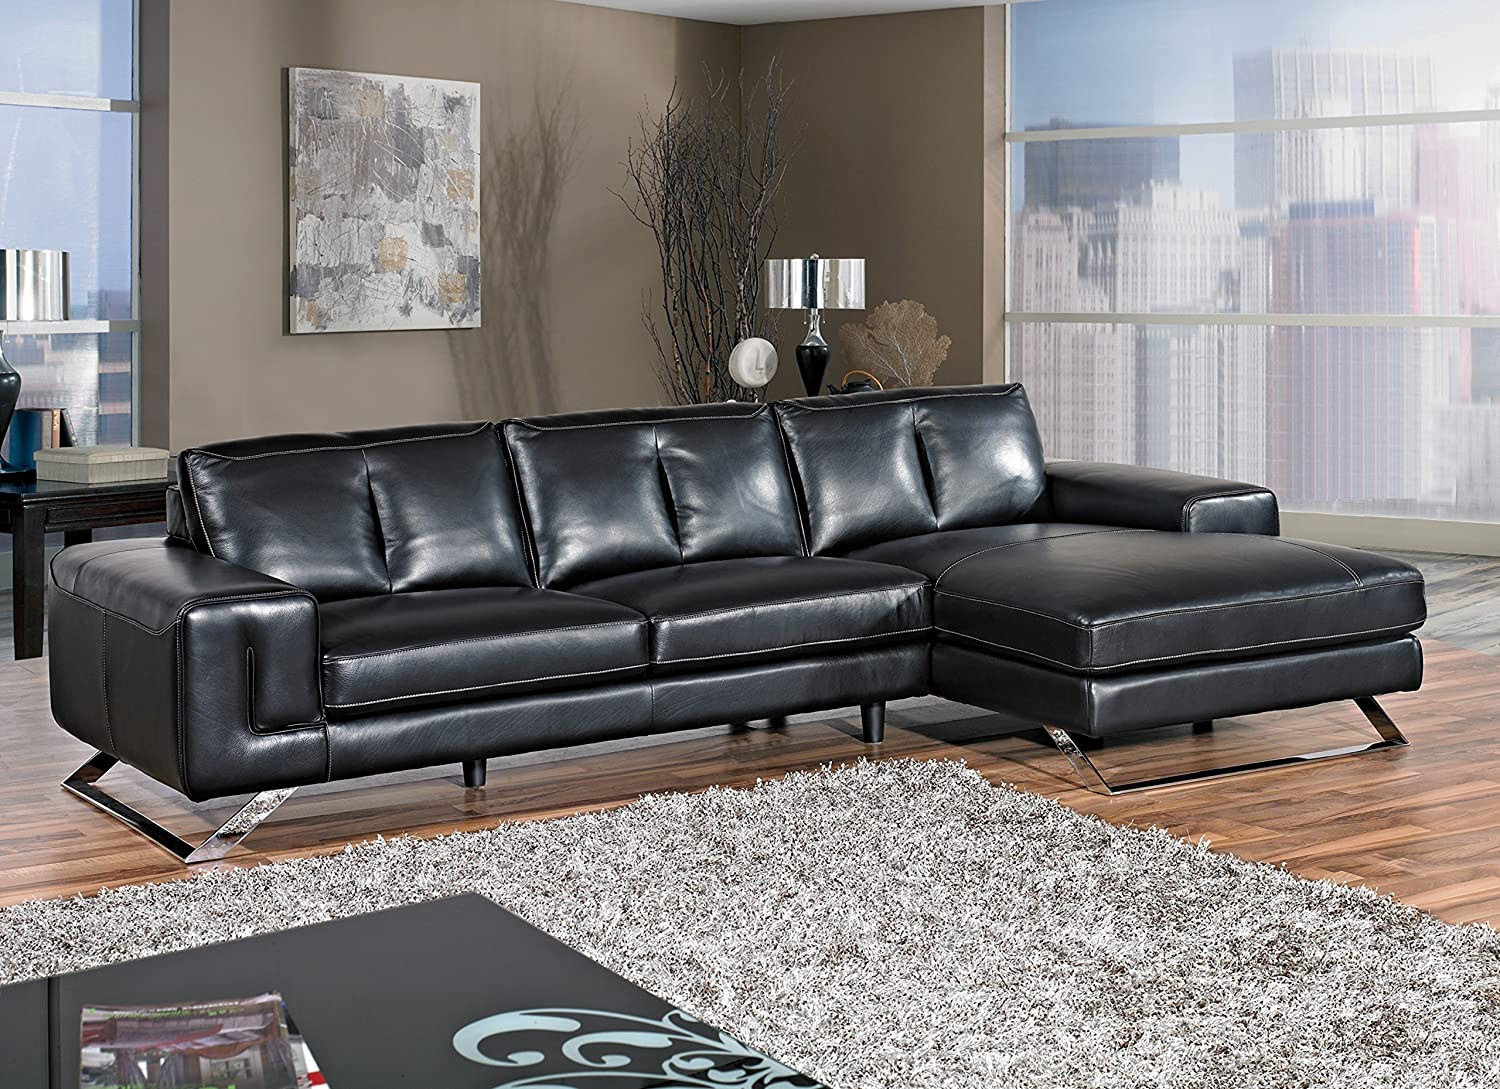 Cortesi Home Contemporary Manhattan Genuine Leather Sectional Sofa with Right Chaise Lounge - Black